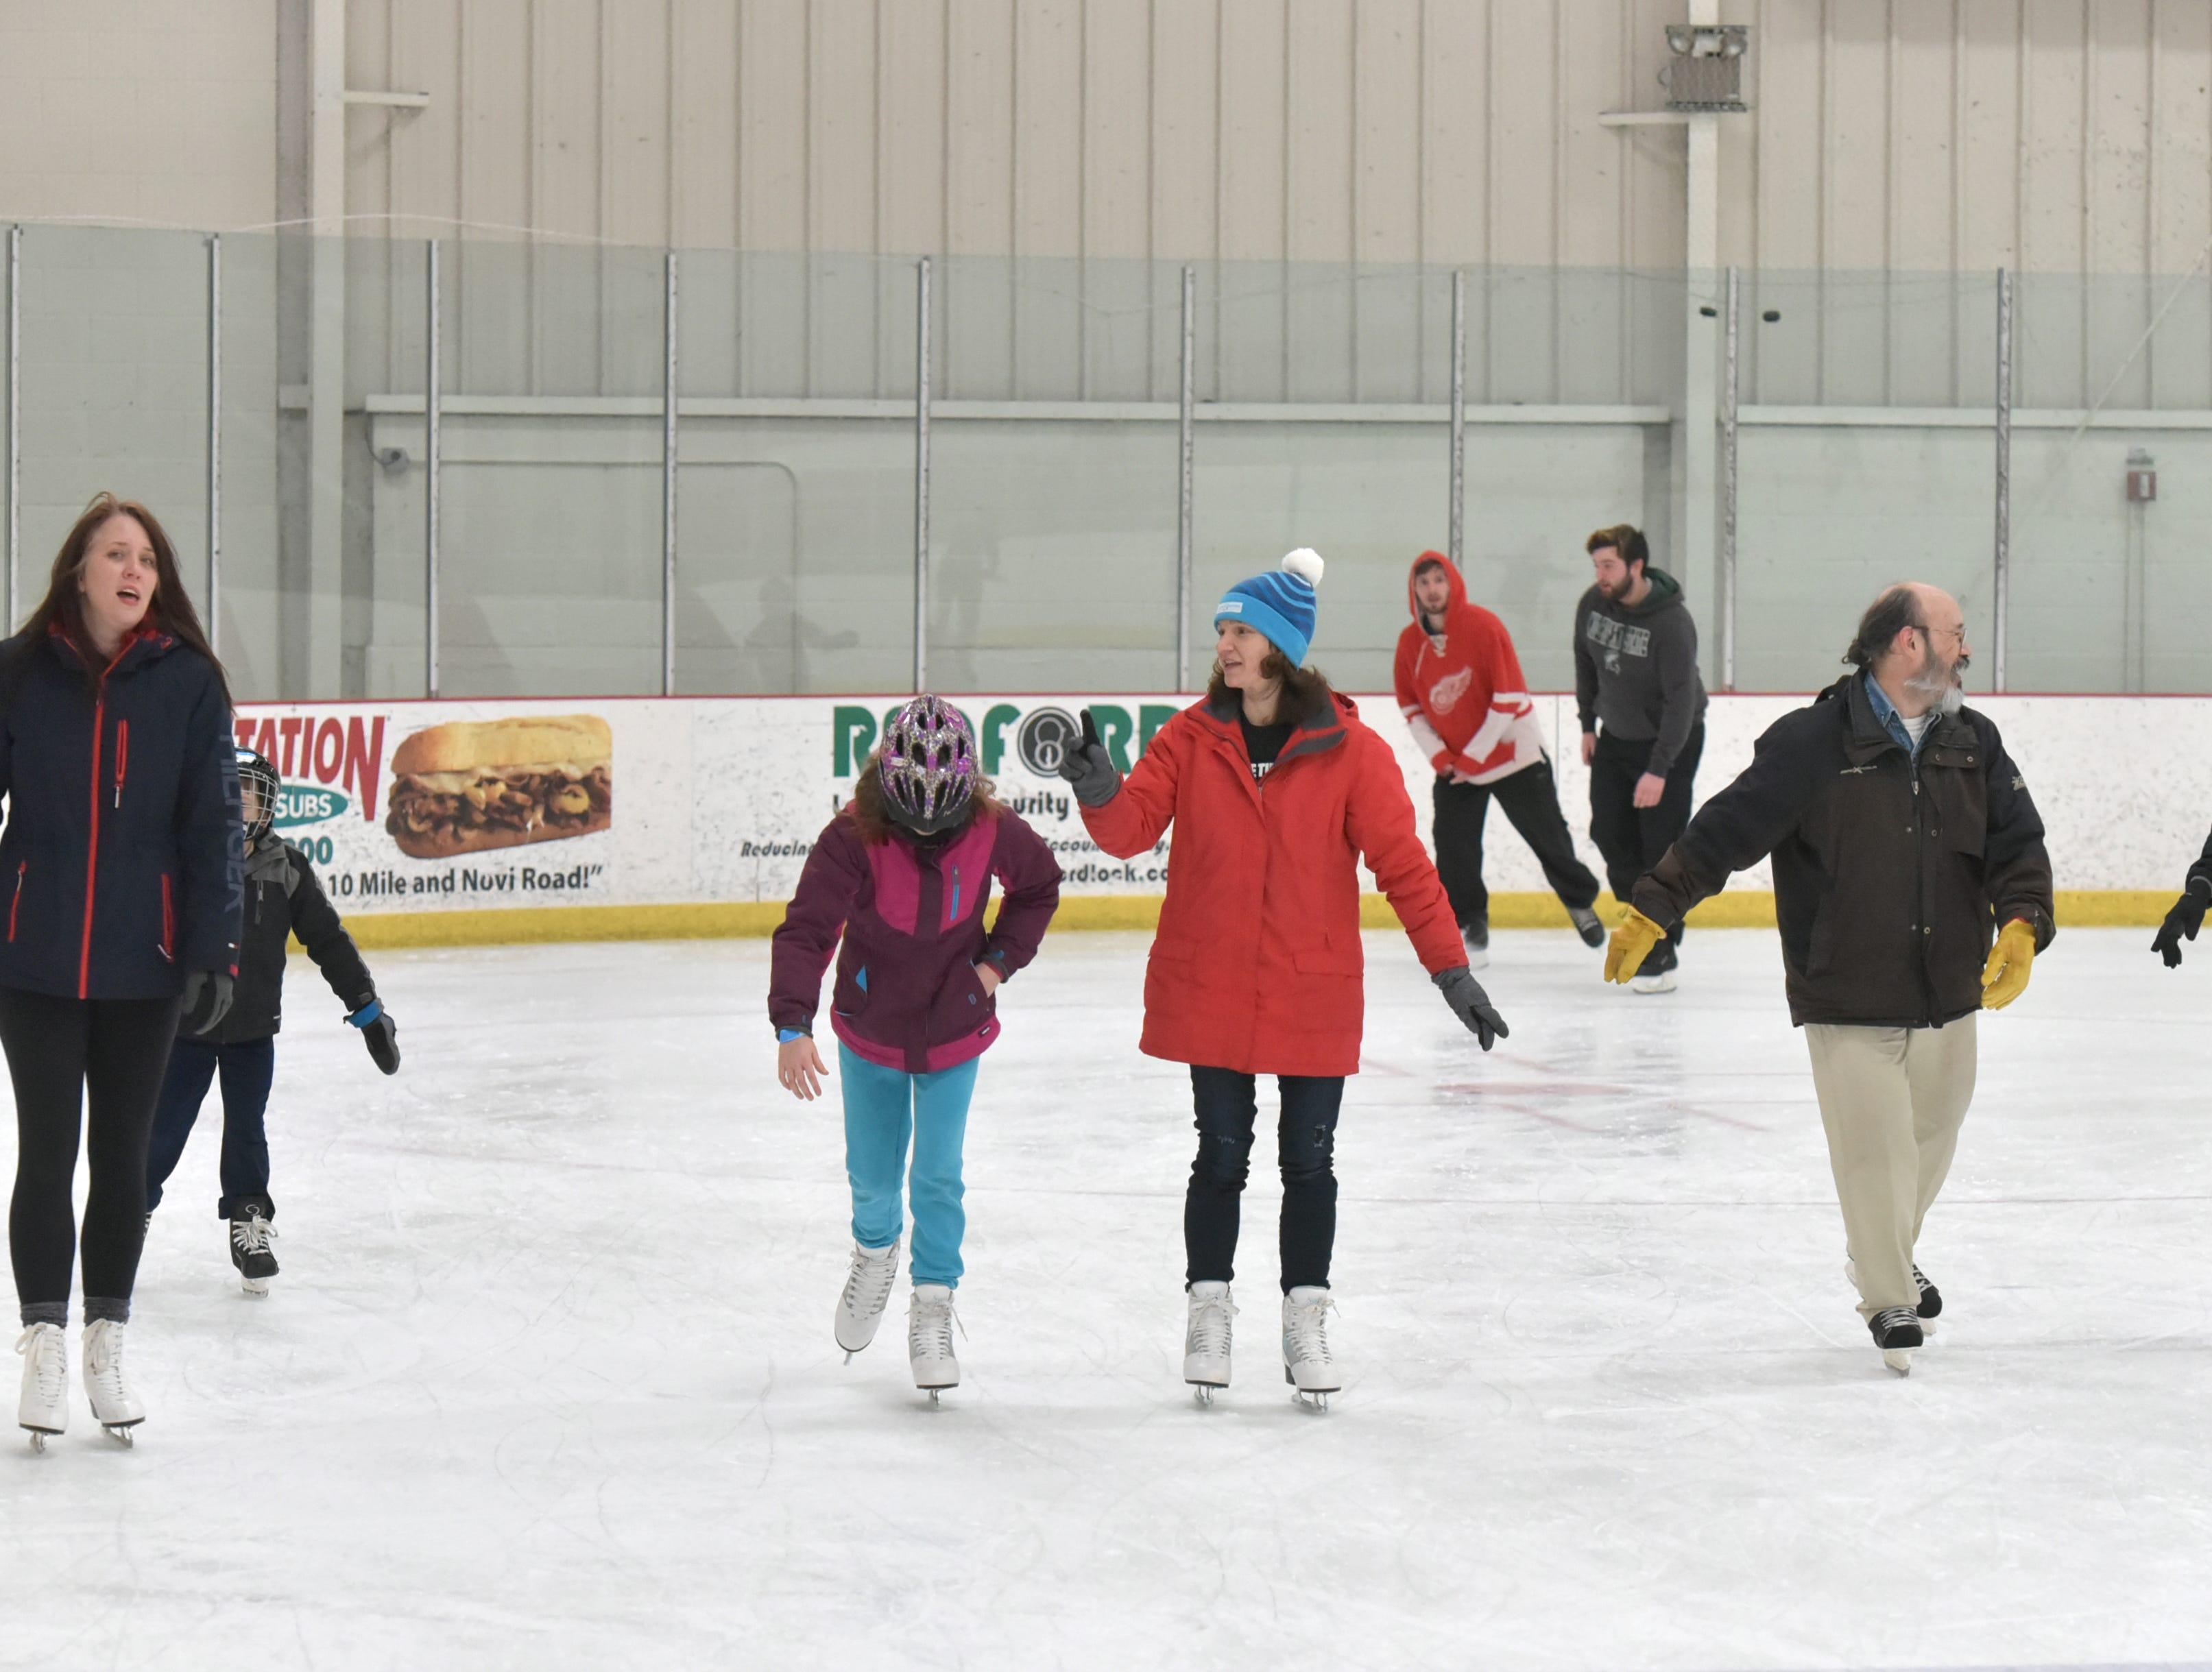 The weekday Noon Skate at the Novi Ice Arena usually attracts a fair amount of skaters - year round.